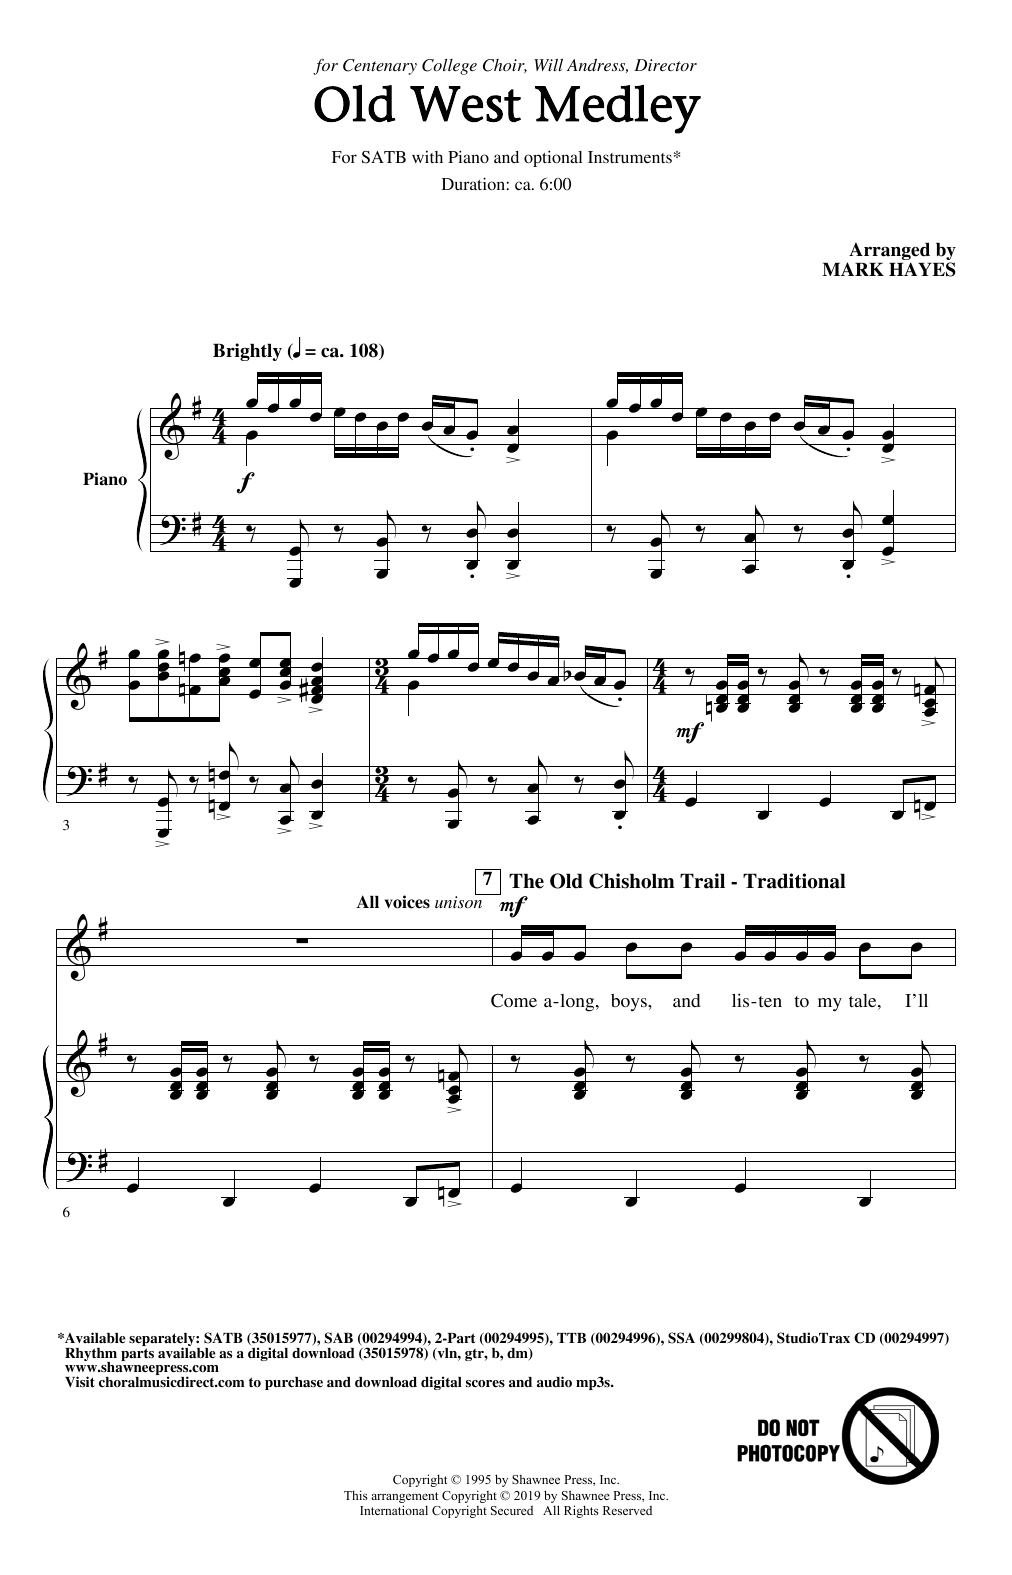 Download Traditional 'Old West Medley (arr. Mark Hayes)' Digital Sheet Music Notes & Chords and start playing in minutes